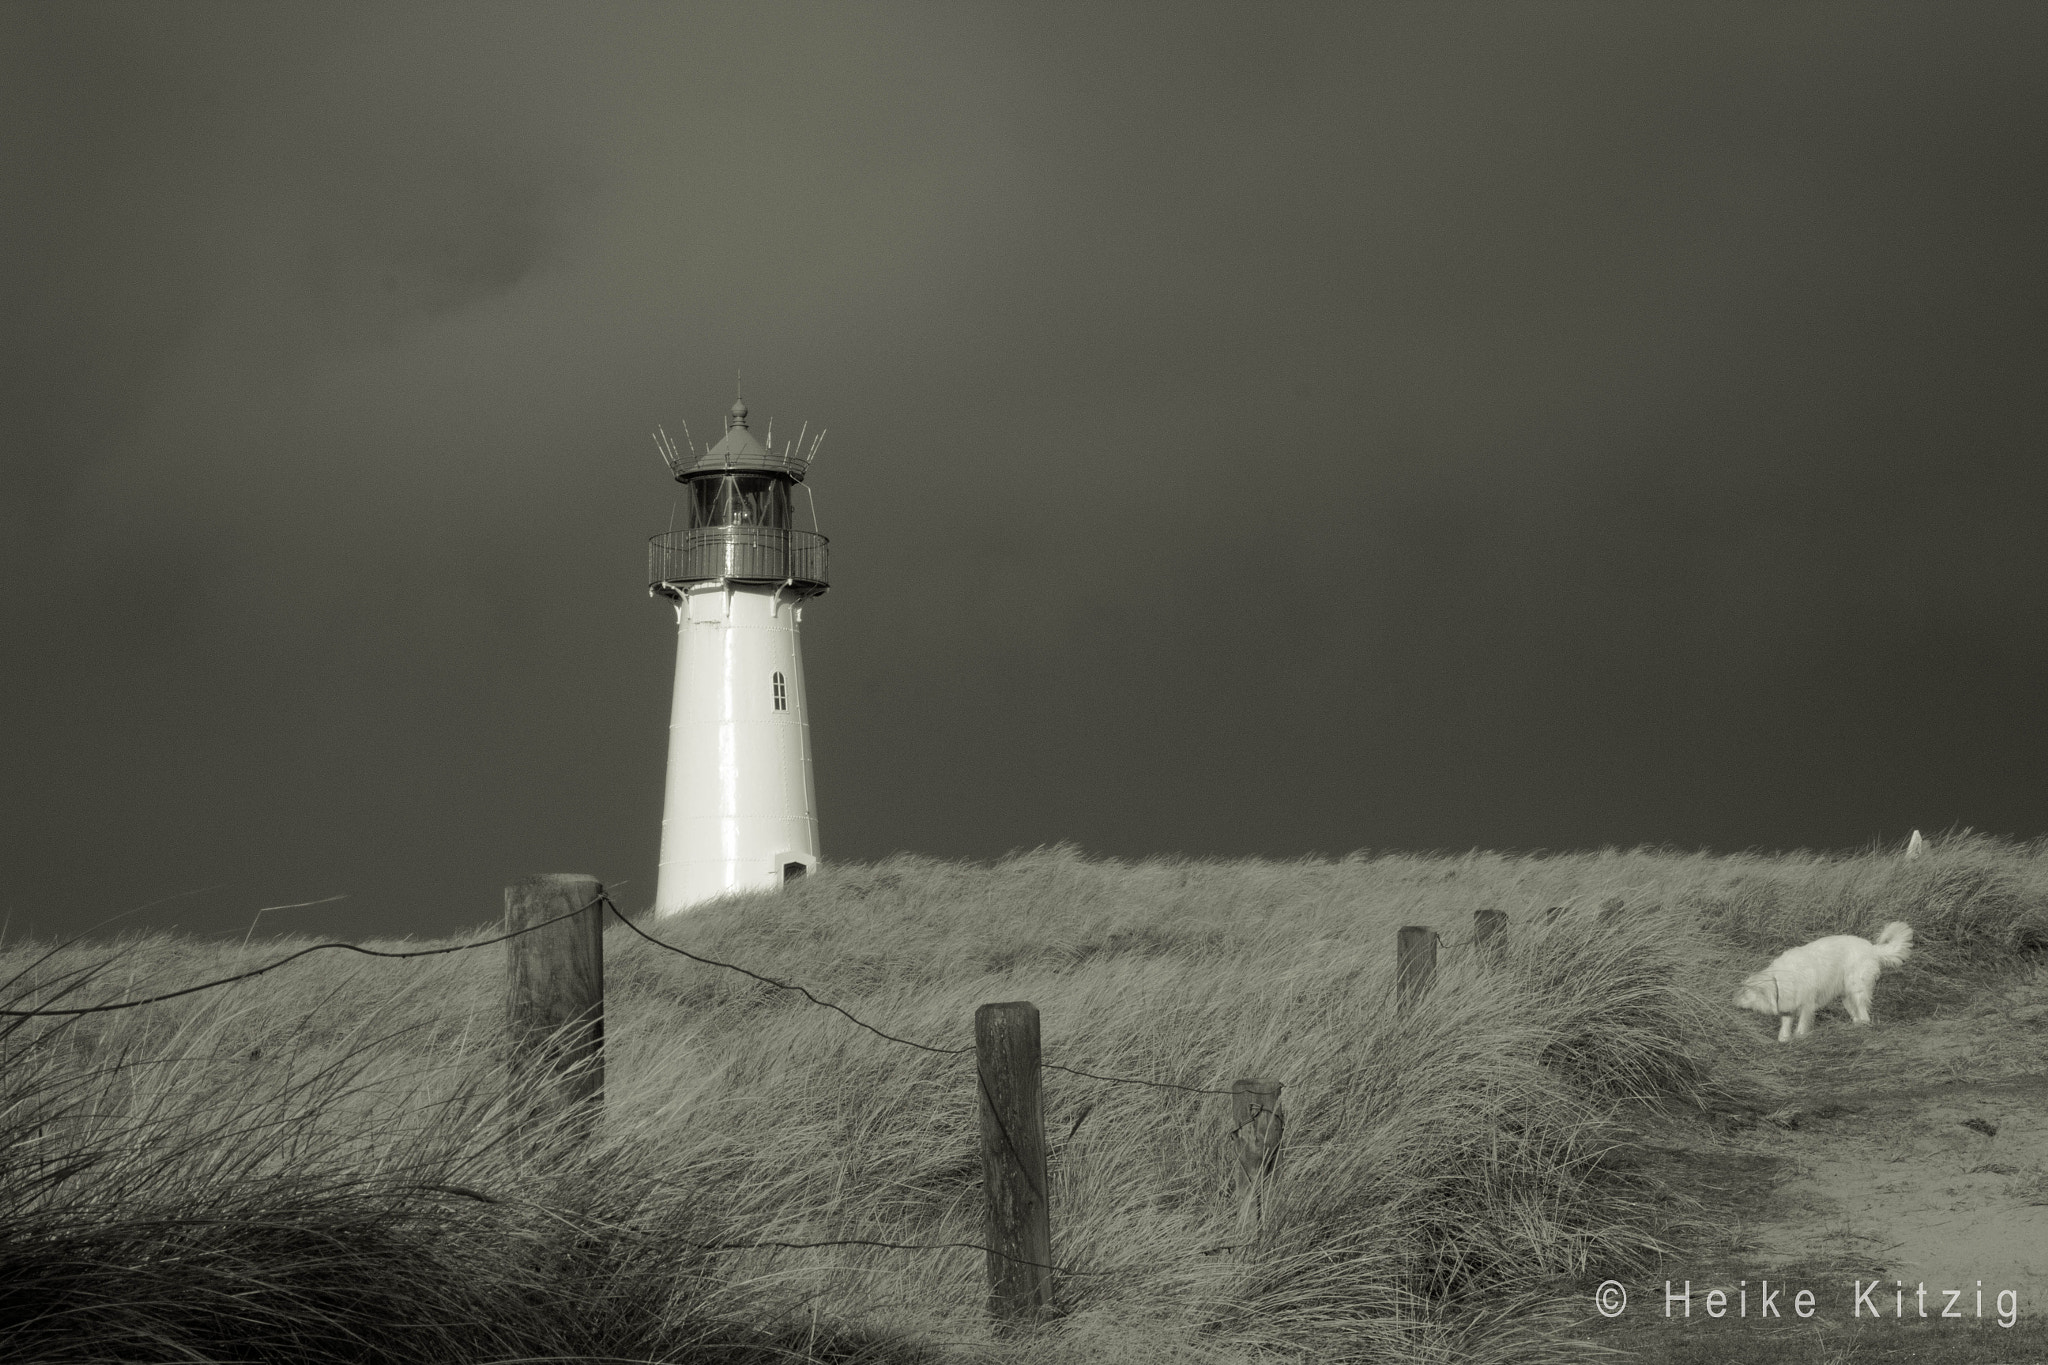 Photograph Lighthouse with dog Emma in List Sylt bw by Heike Kitzig on 500px